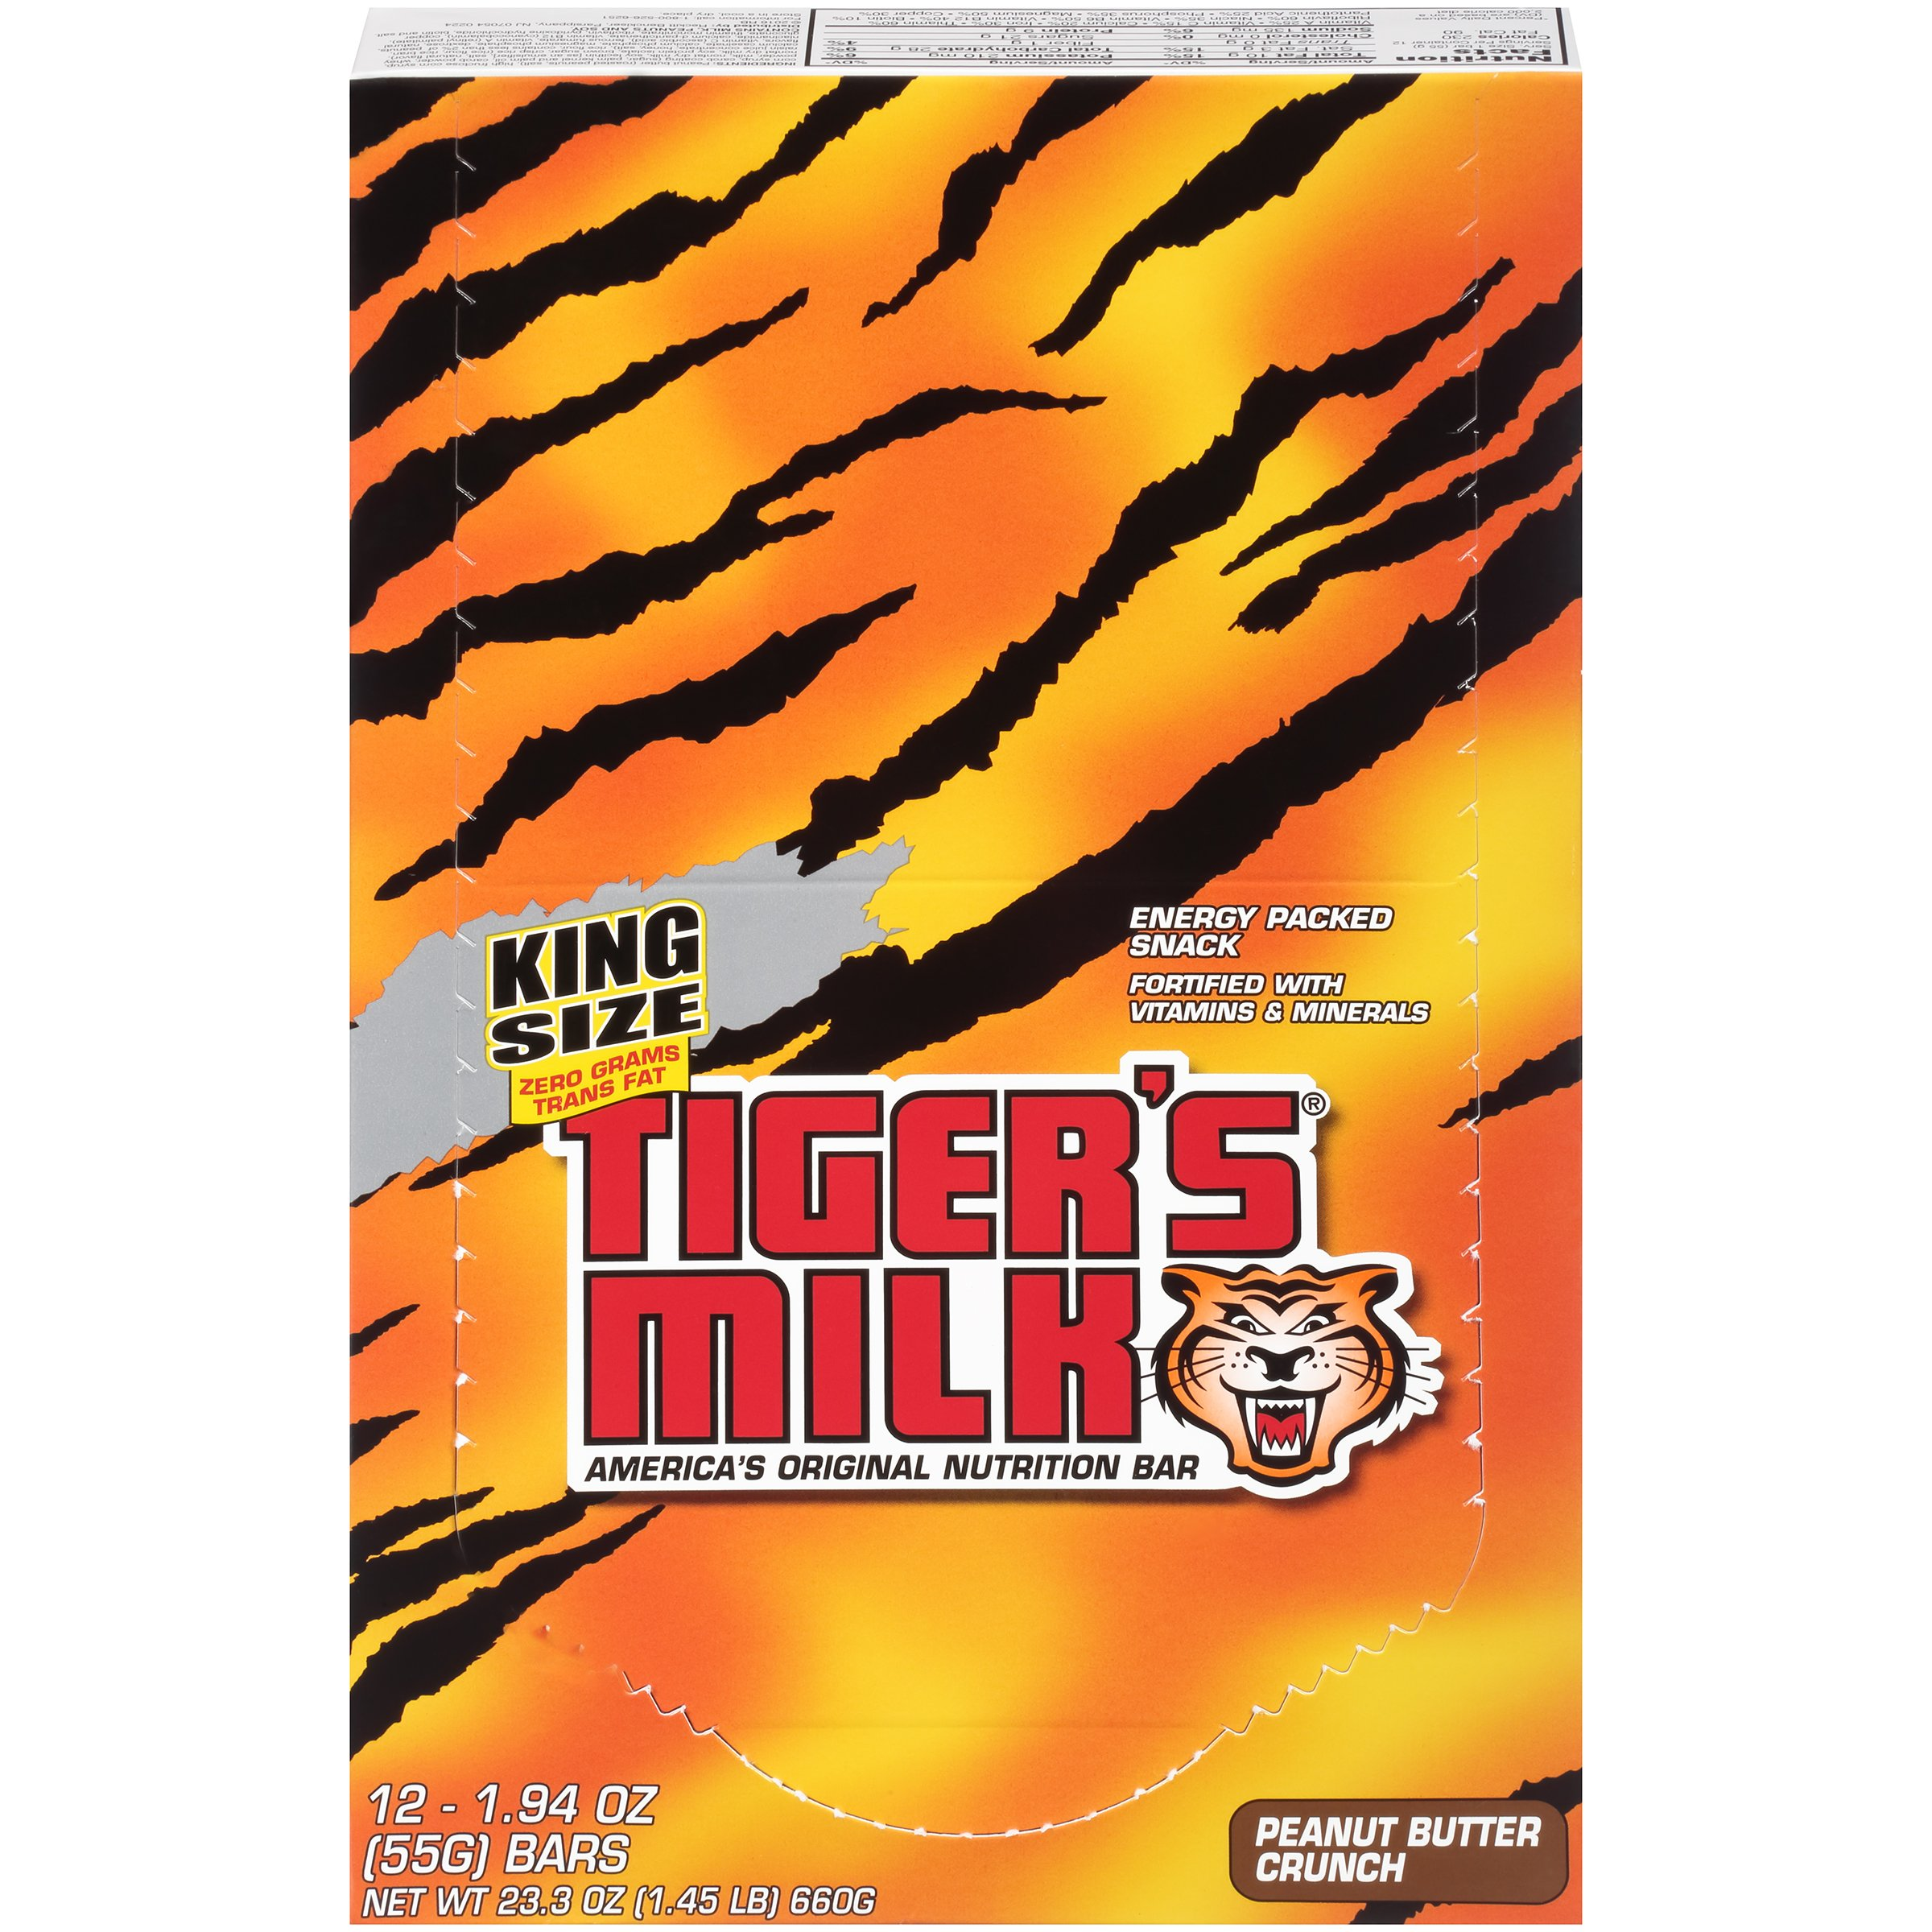 Tiger's Milk Nutrition Bar (Peanut Butter Crunch, King Size, Bulk Protein Bars), 55 Gram (Pack of 96)